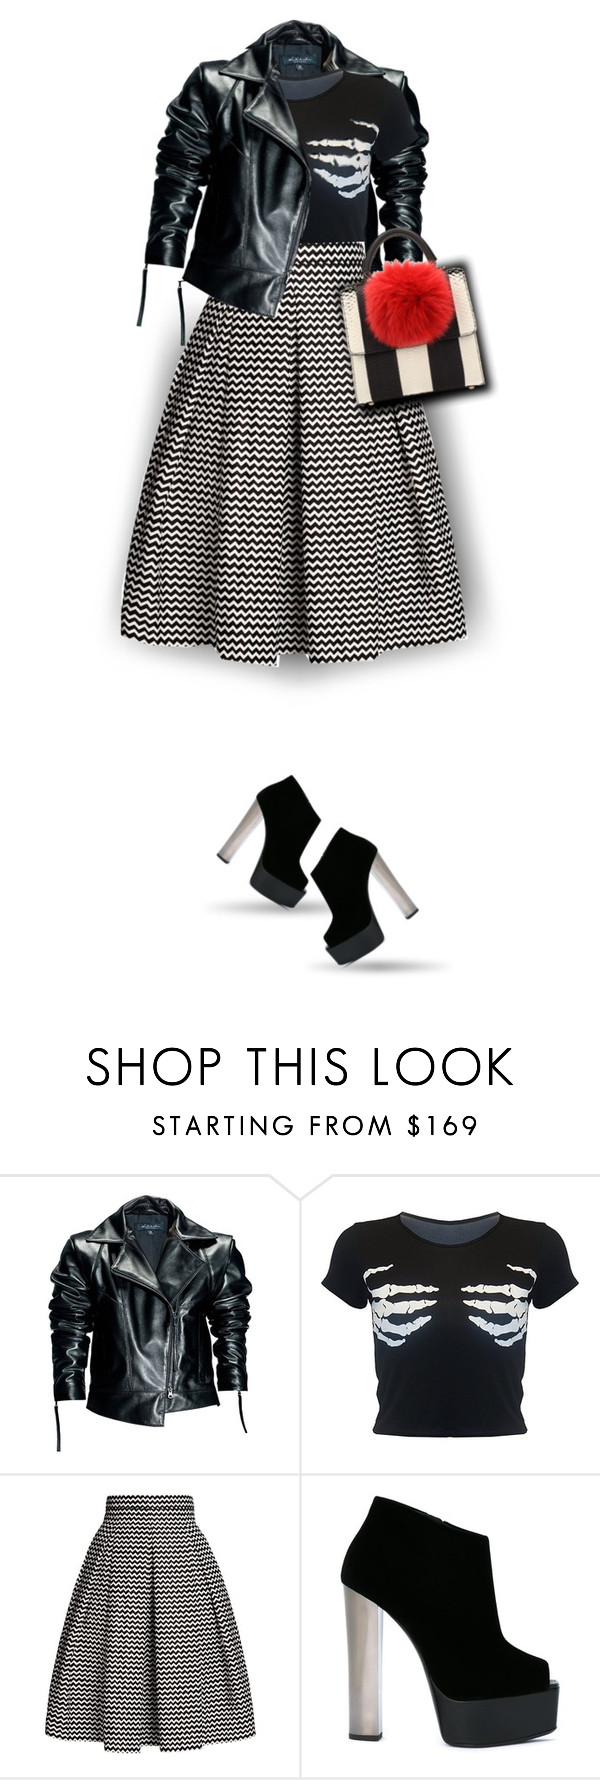 """""""Skirt and Boots"""" by amymrbll ❤ liked on Polyvore featuring Leka, Rumour London, Giuseppe Zanotti and Les Petits Joueurs"""